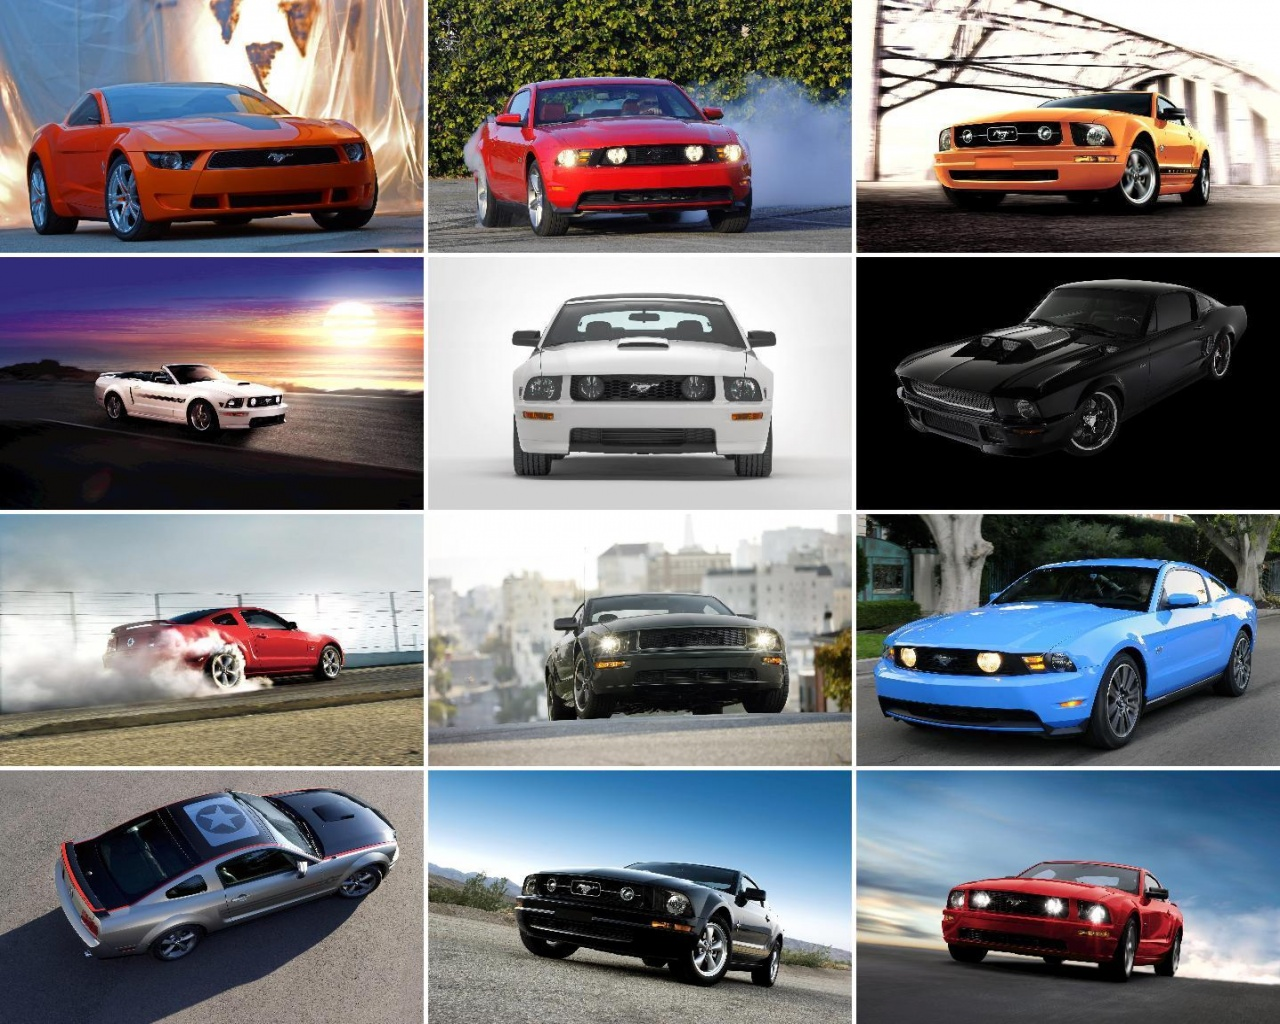 Check out these Mustang GT wallpapers at 1080phdwallpapercom 1280x1024